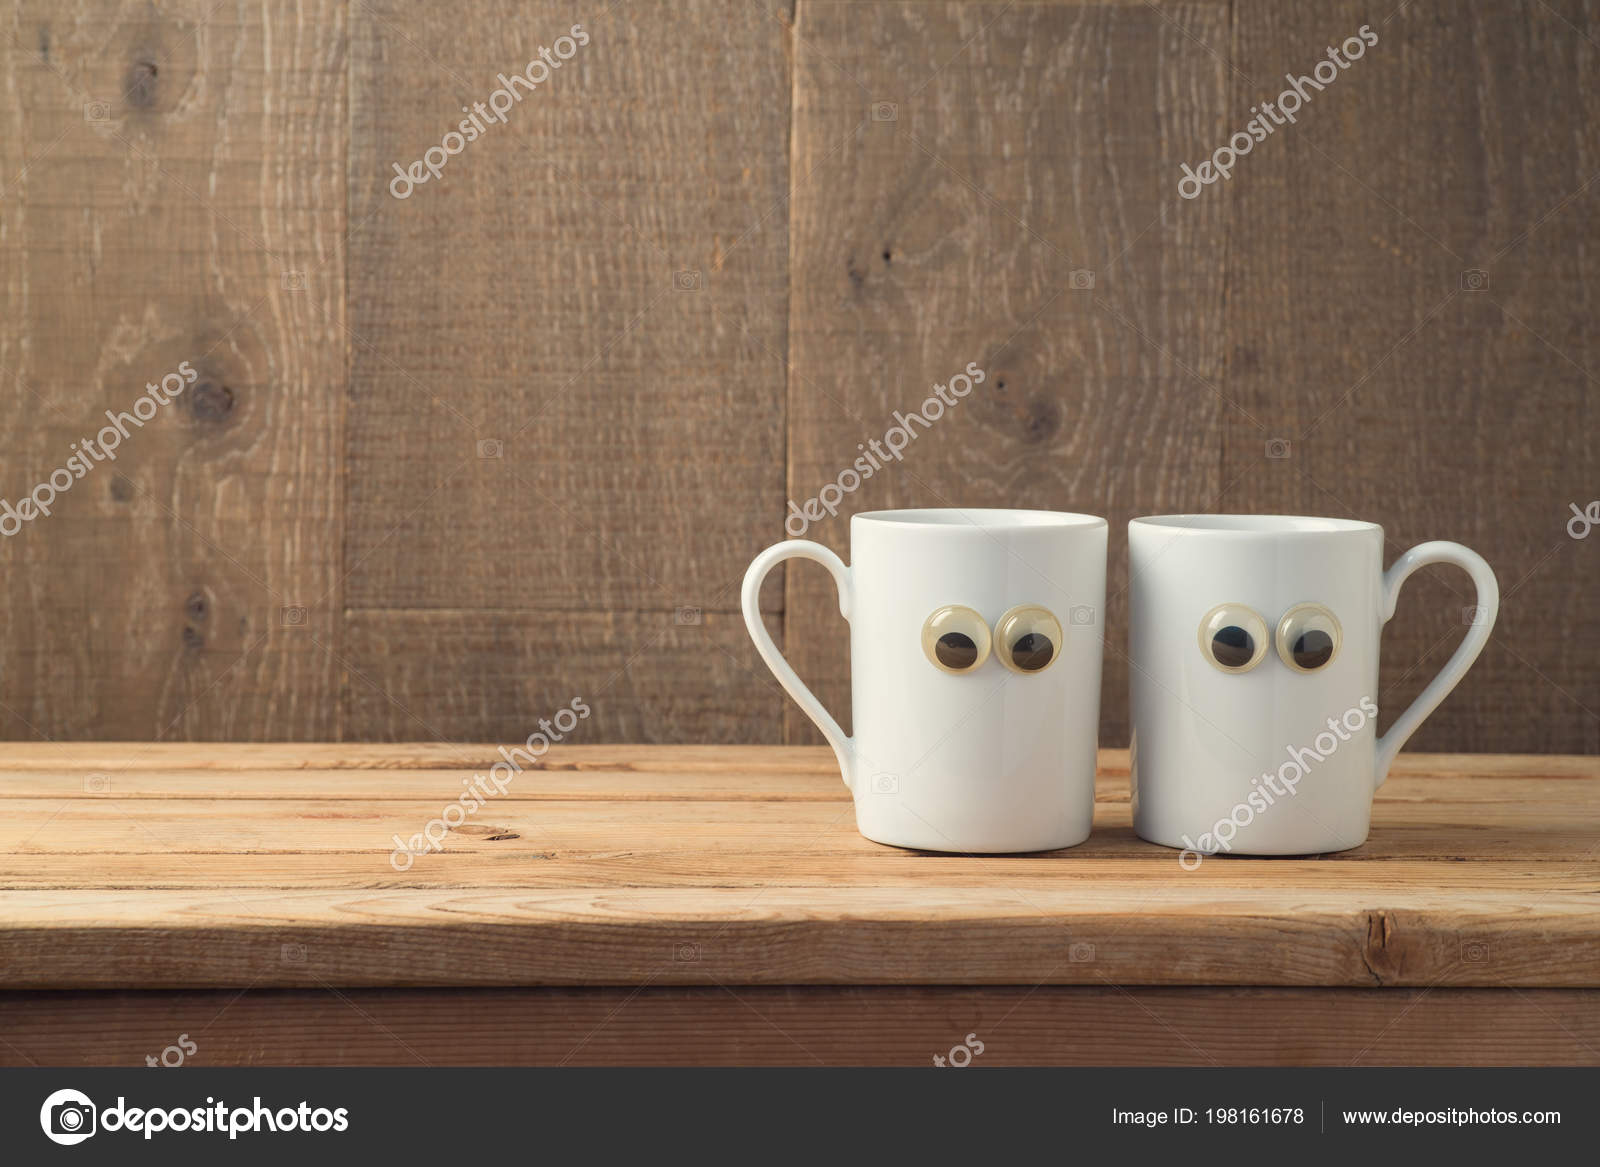 Best Friends Concept Two Coffee Cups Funny Characters Wooden Background Stock Photo C Maglara 198161678